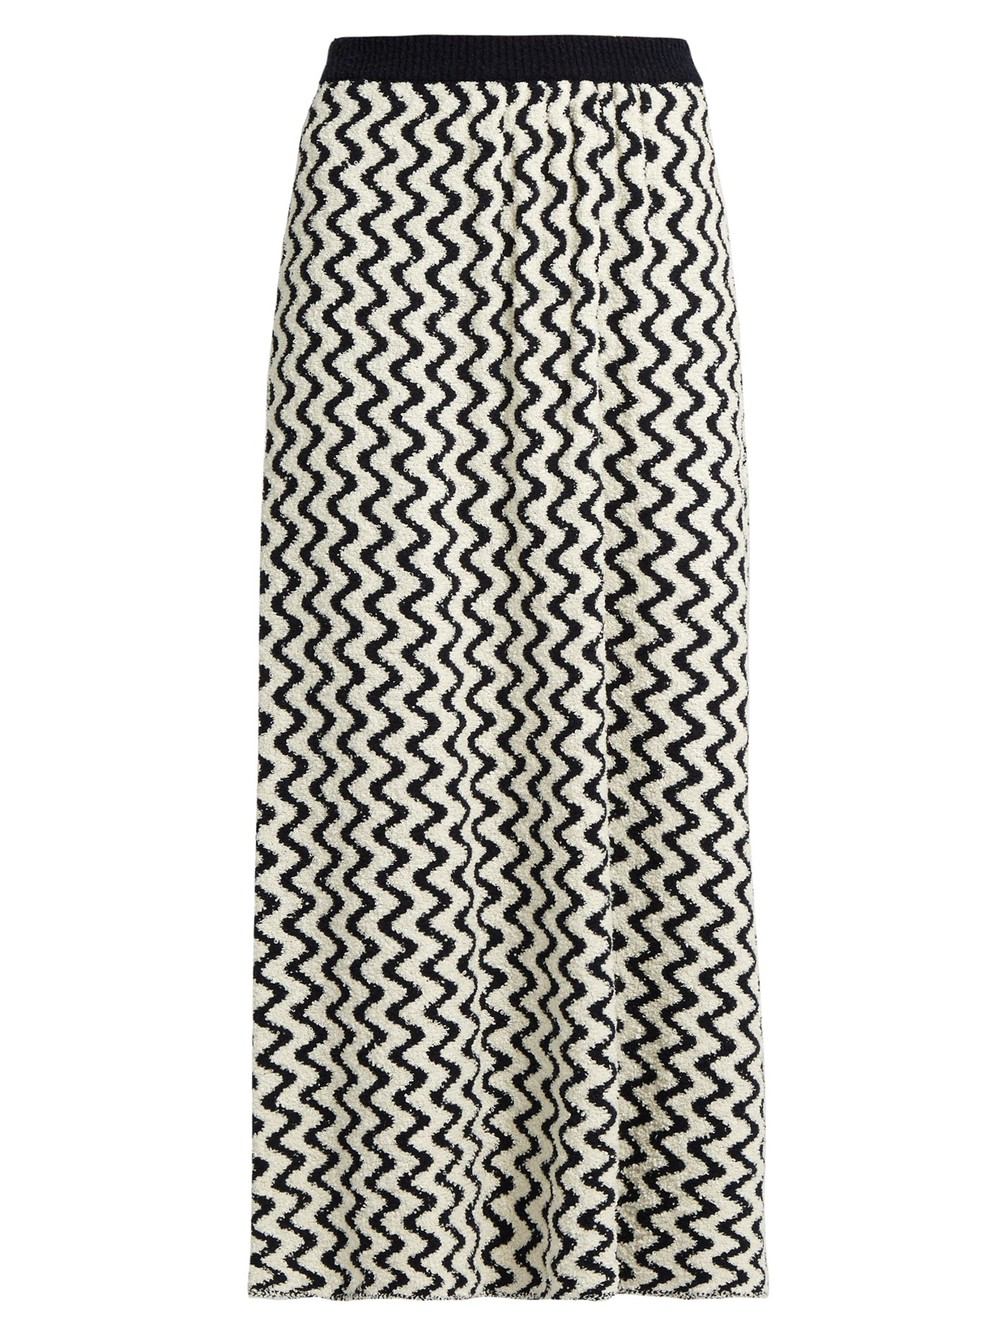 SEE BY CHLOÉ WAVE JACQUARD MAXI SKIRT